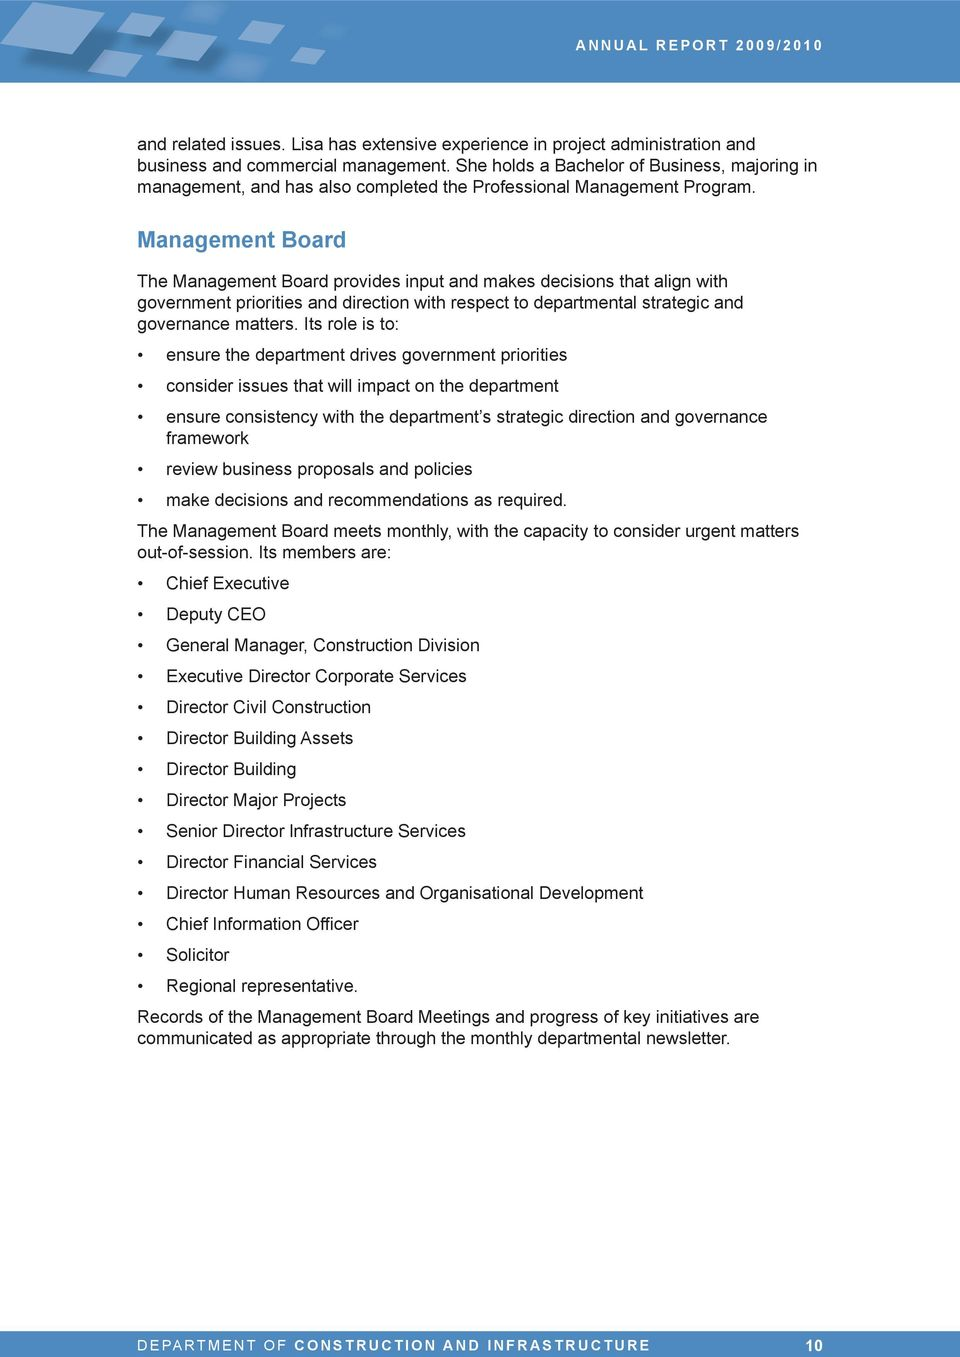 Management Board The Management Board provides input and makes decisions that align with government priorities and direction with respect to departmental strategic and governance matters.